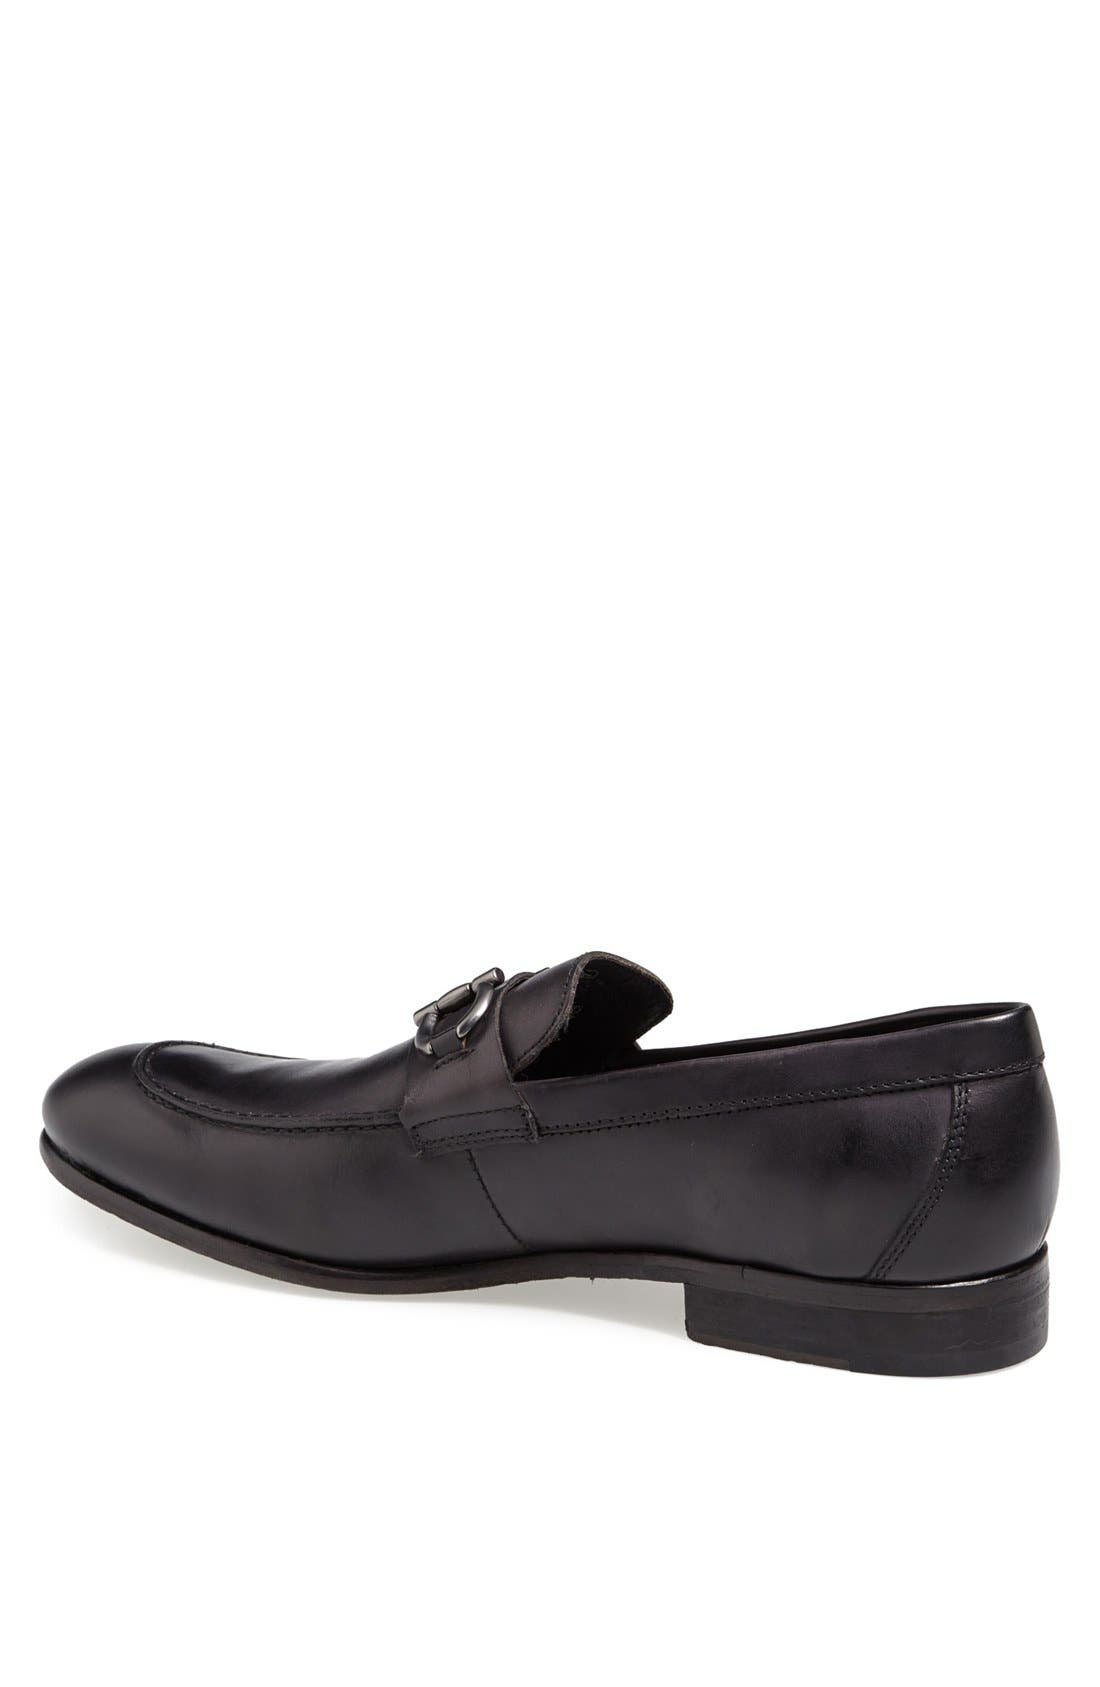 Alternate Image 2  - Kenneth Cole New York 'Heat It Up' Bit Loafer